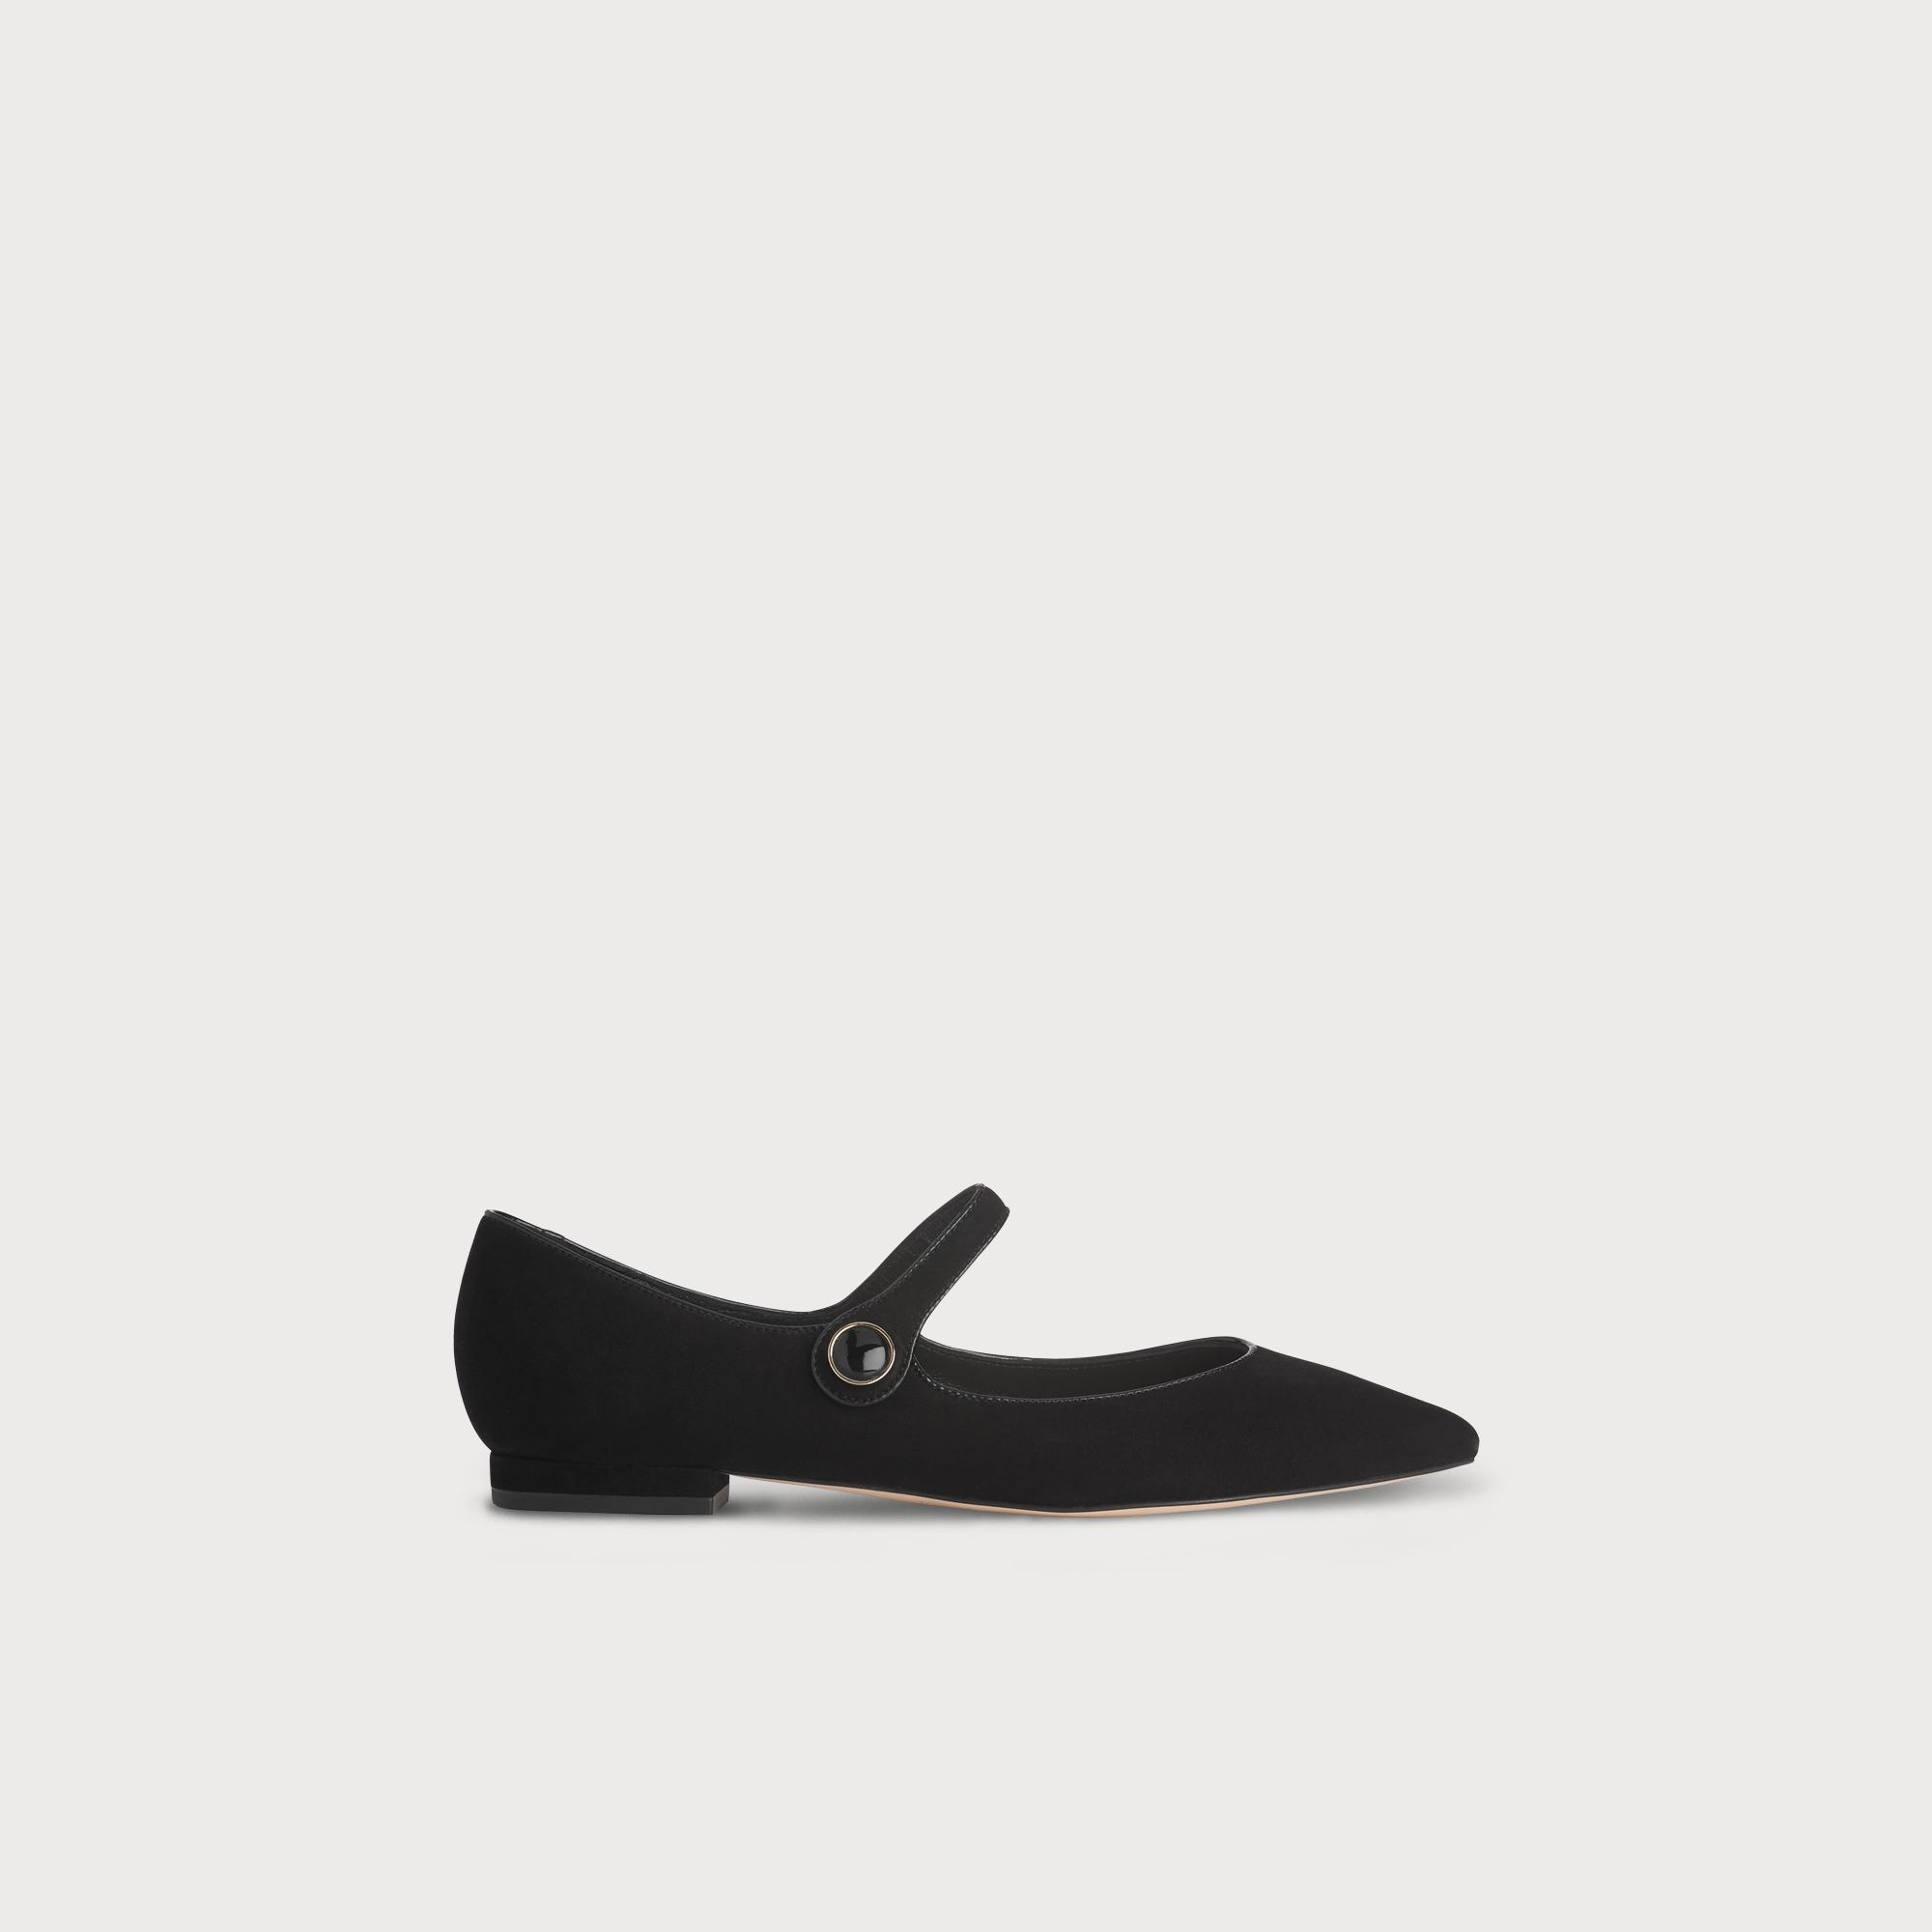 Mary-Jane Black Suede Flat